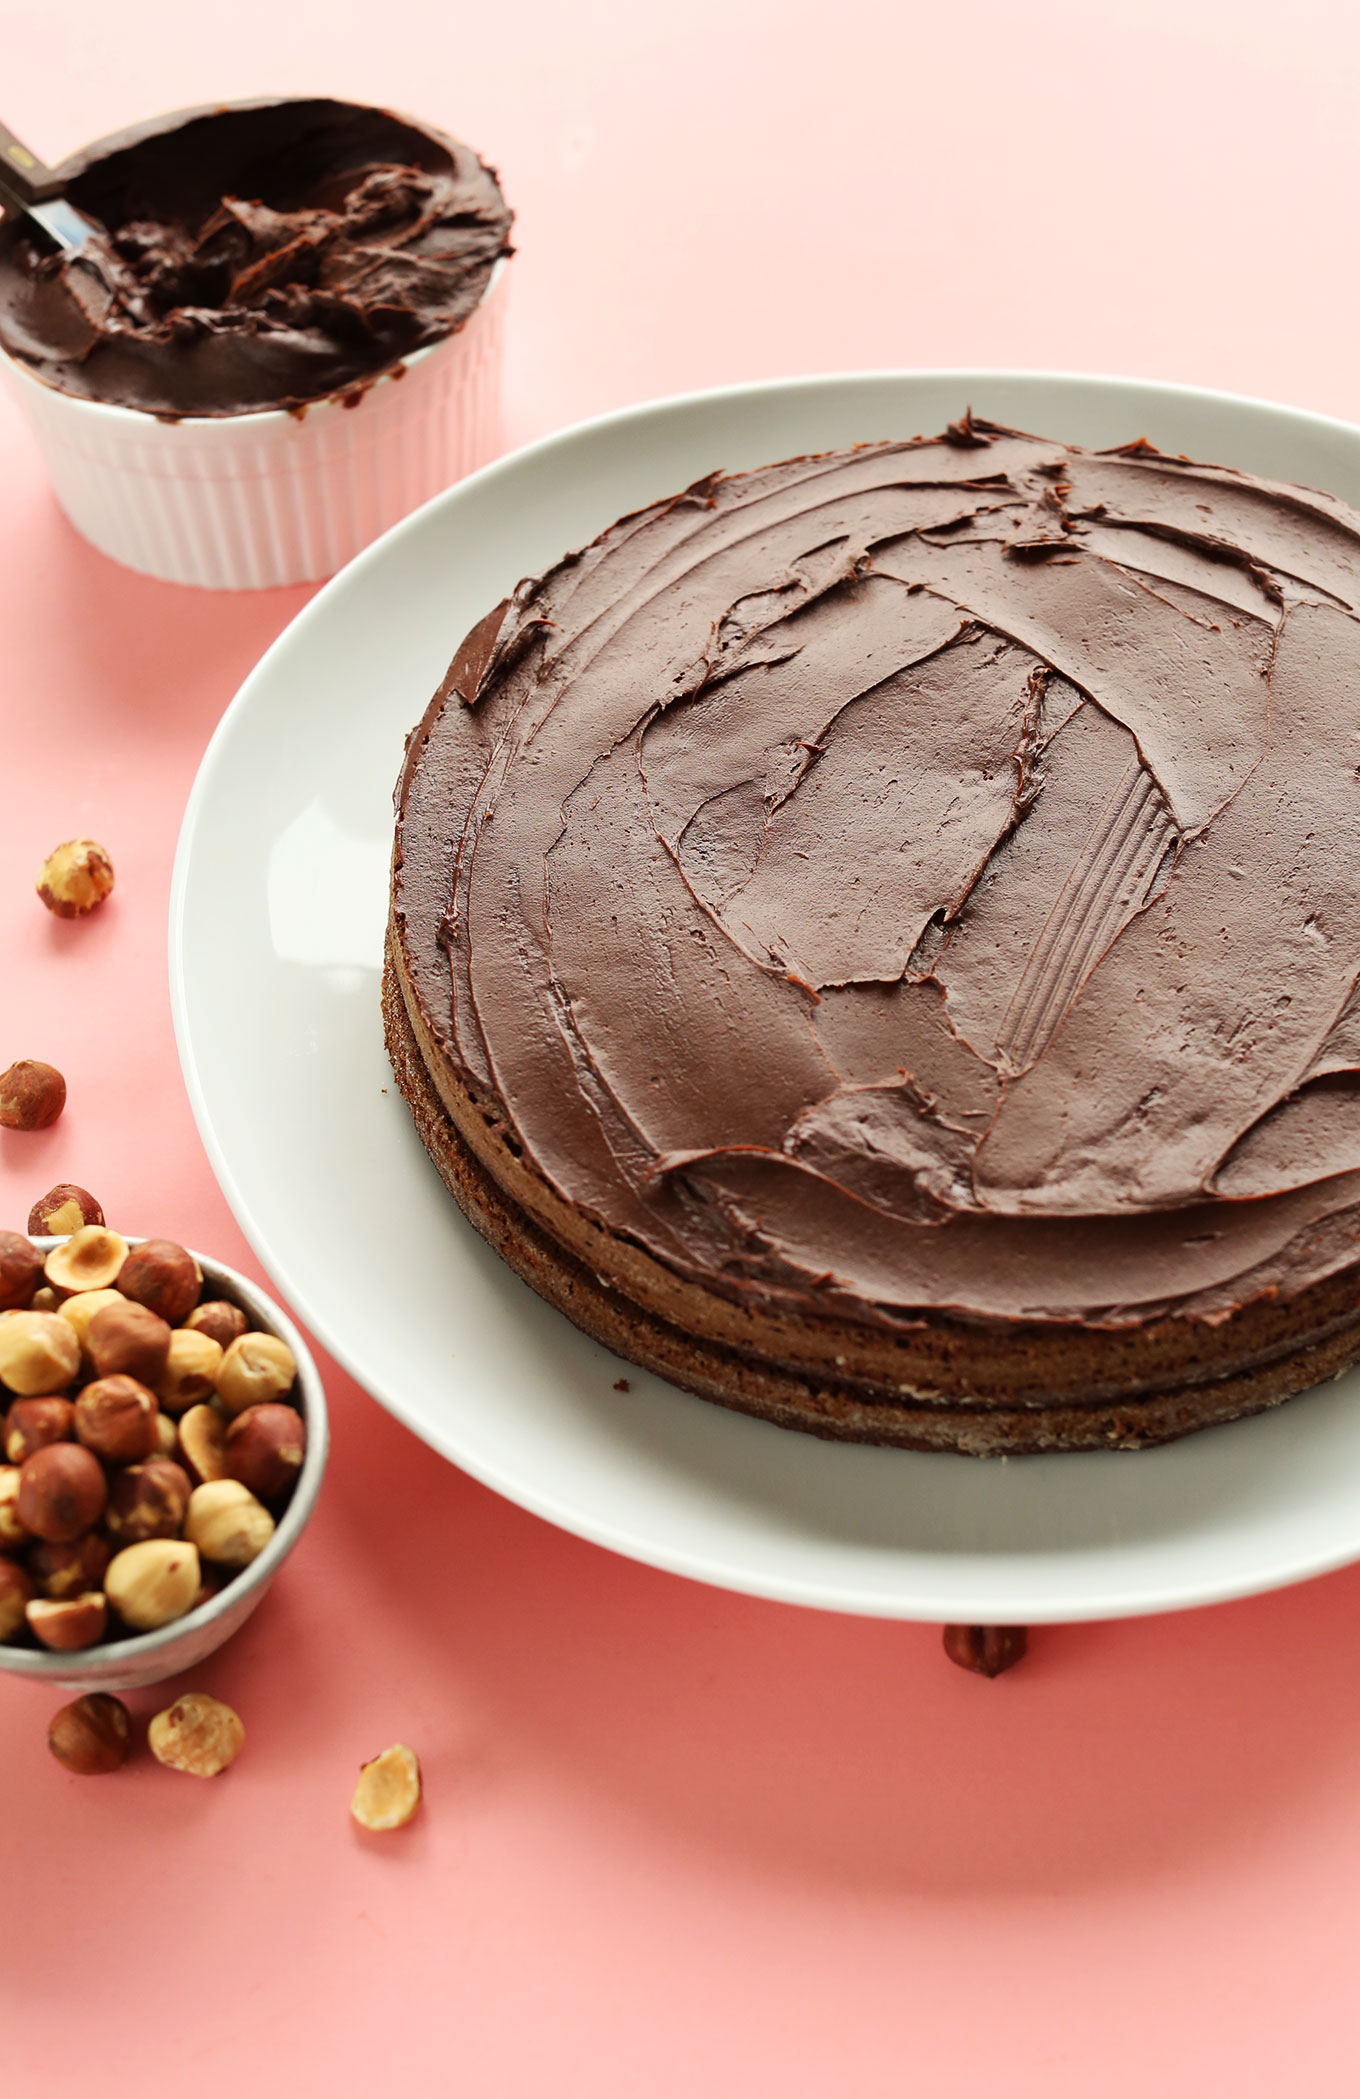 Two layers of our gluten-free vegan Chocolate Hazelnut Cake recipe with rich chocolate frosting